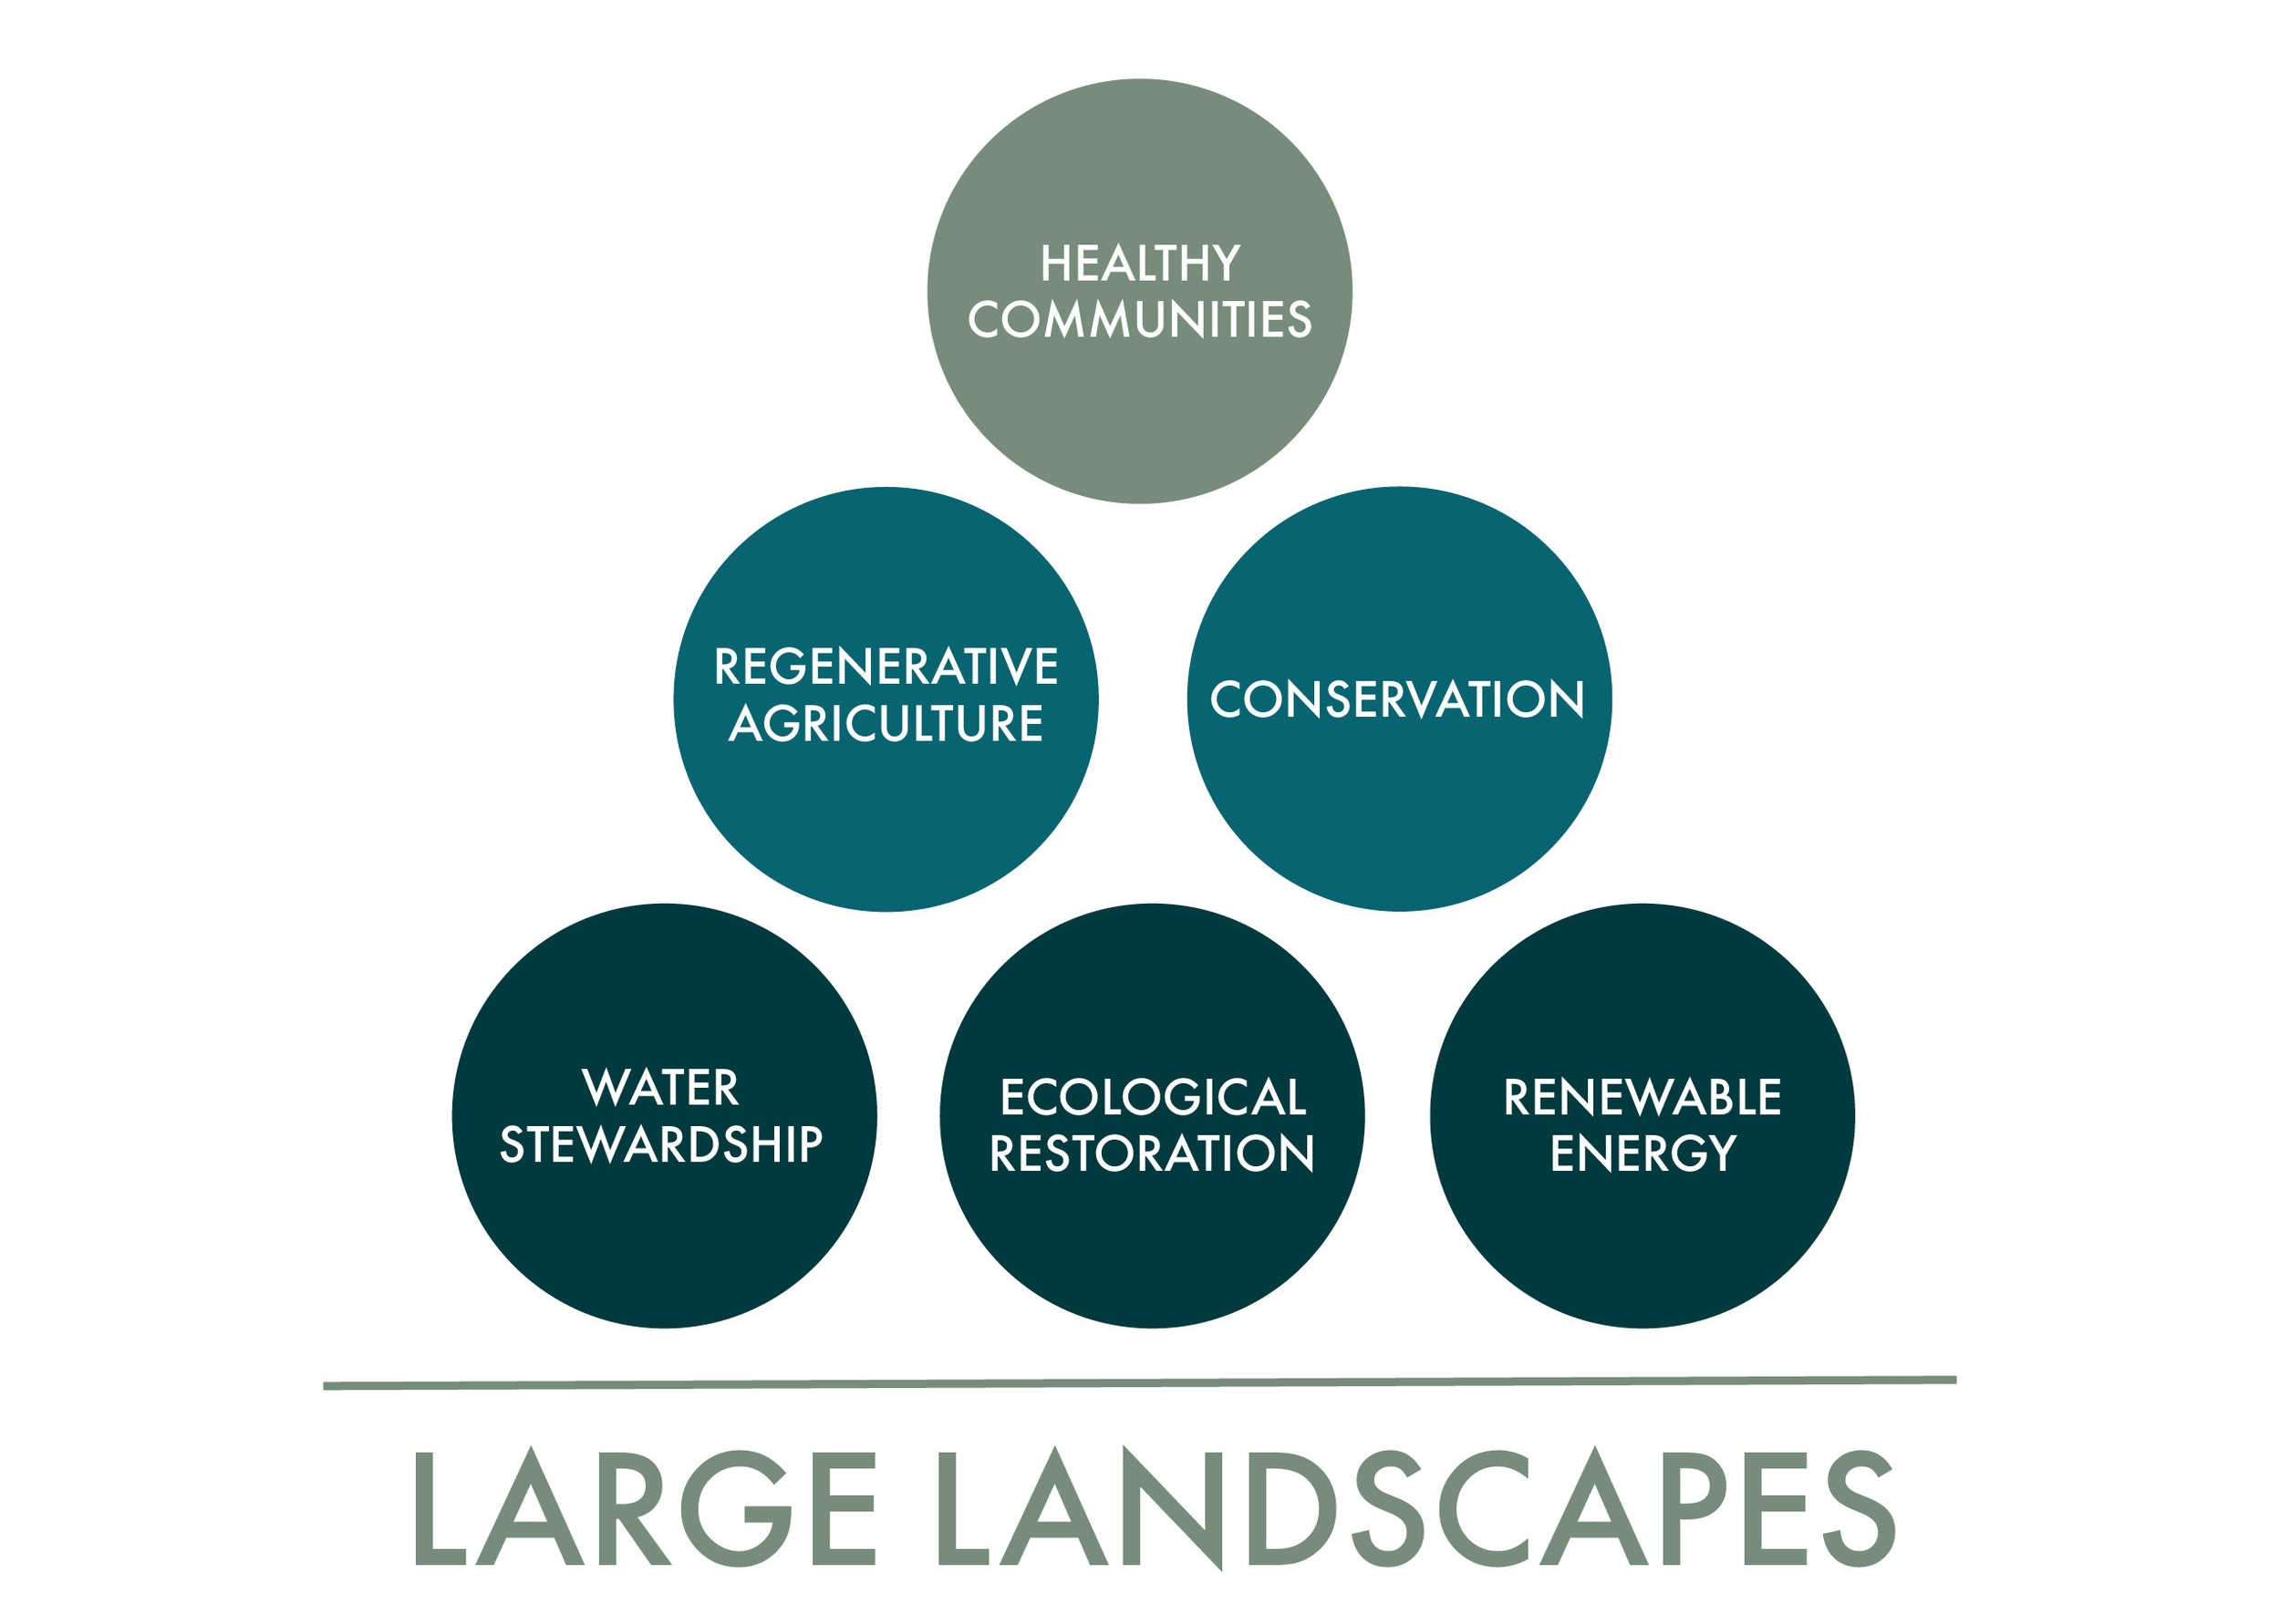 In developing and conserving large landscapes, we use ecological restoration, regenerative agriculture, water stewardship, and additional land-use strategies as building blocks to create healthy communities.